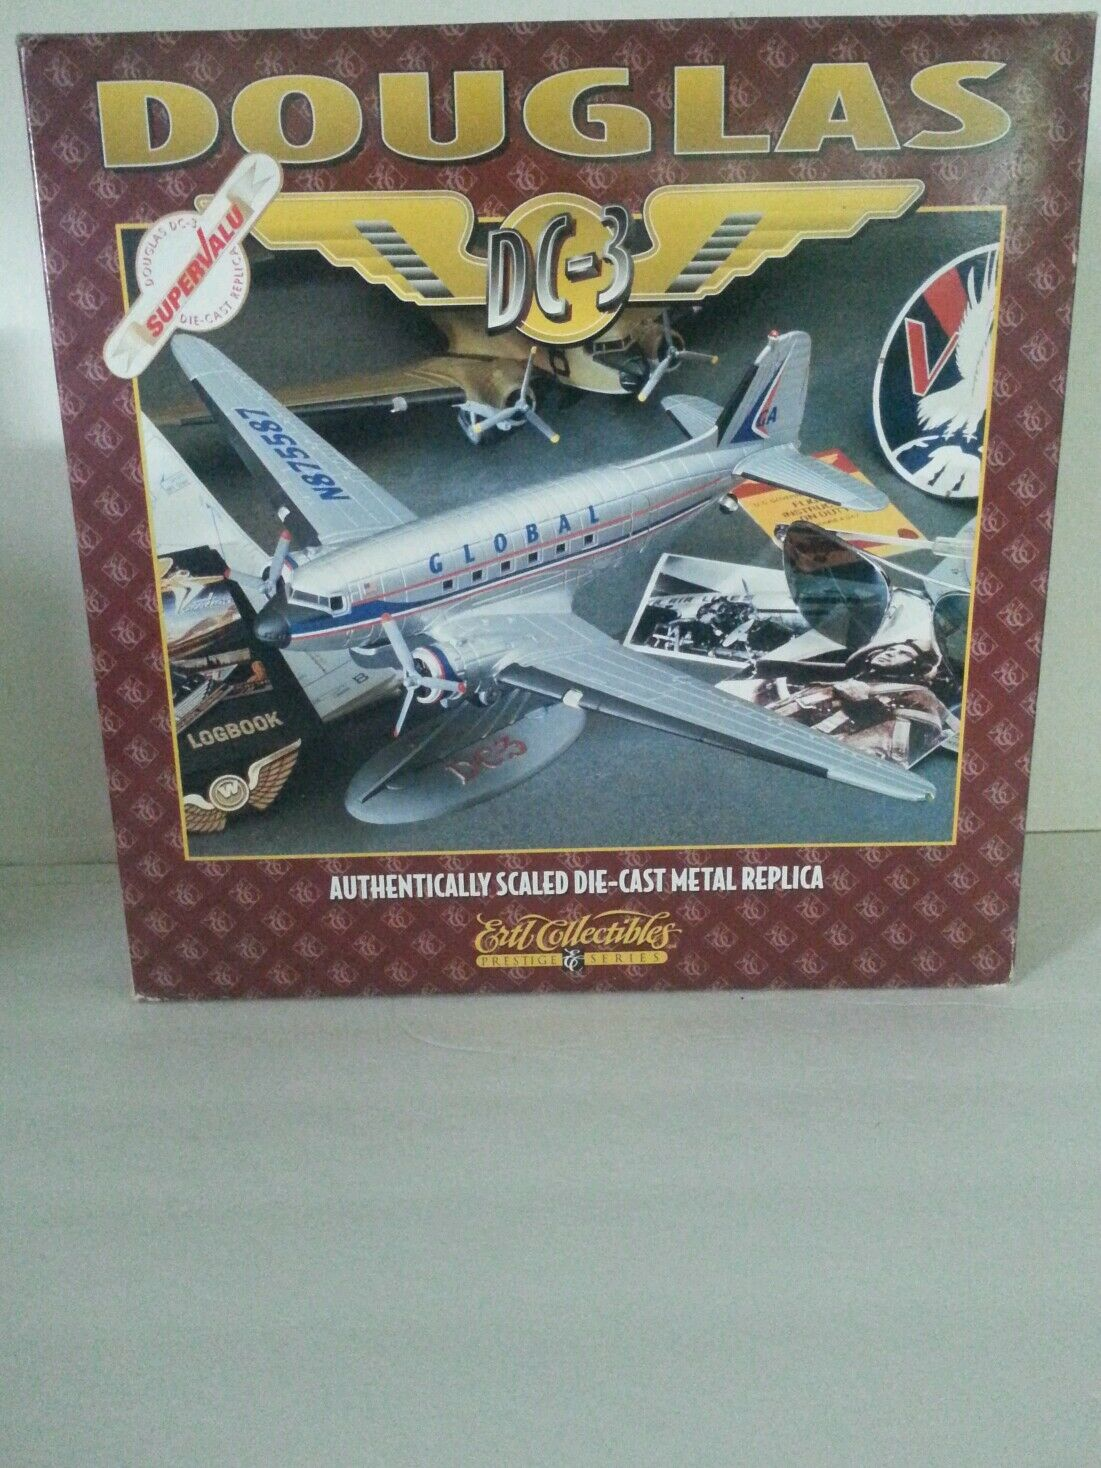 Douglas DC-3 súpervalue Die-cast Ertl Collectibles en la caja